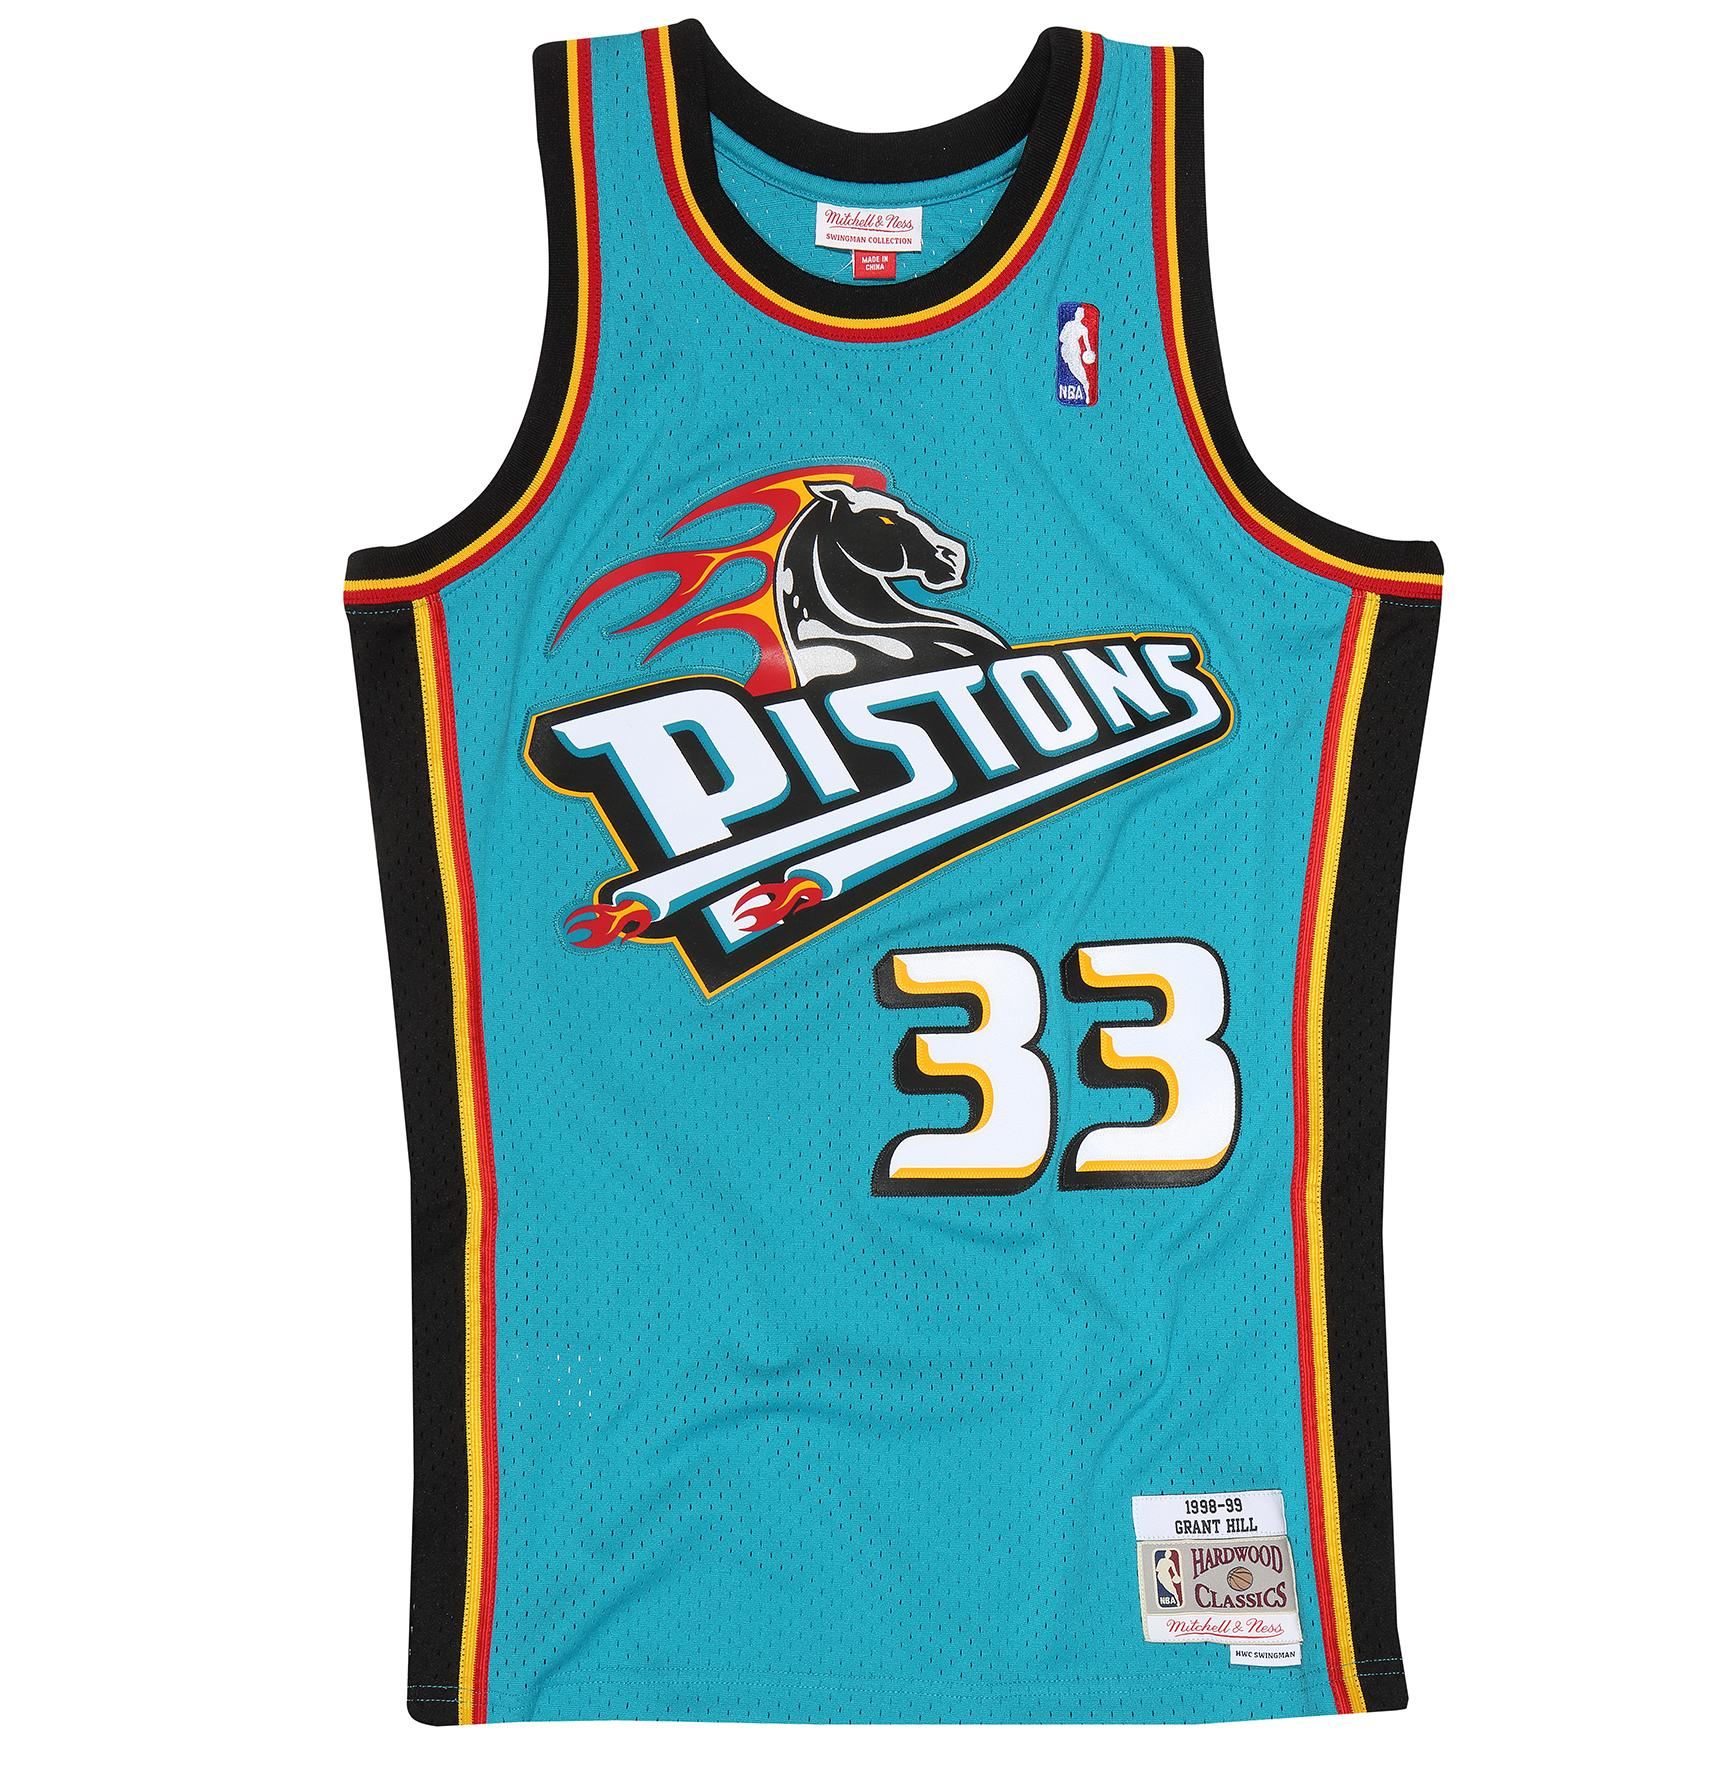 Grant Hill 1998-99 Swingman Jersey Our Price  £90.00 ... 432cd3c33